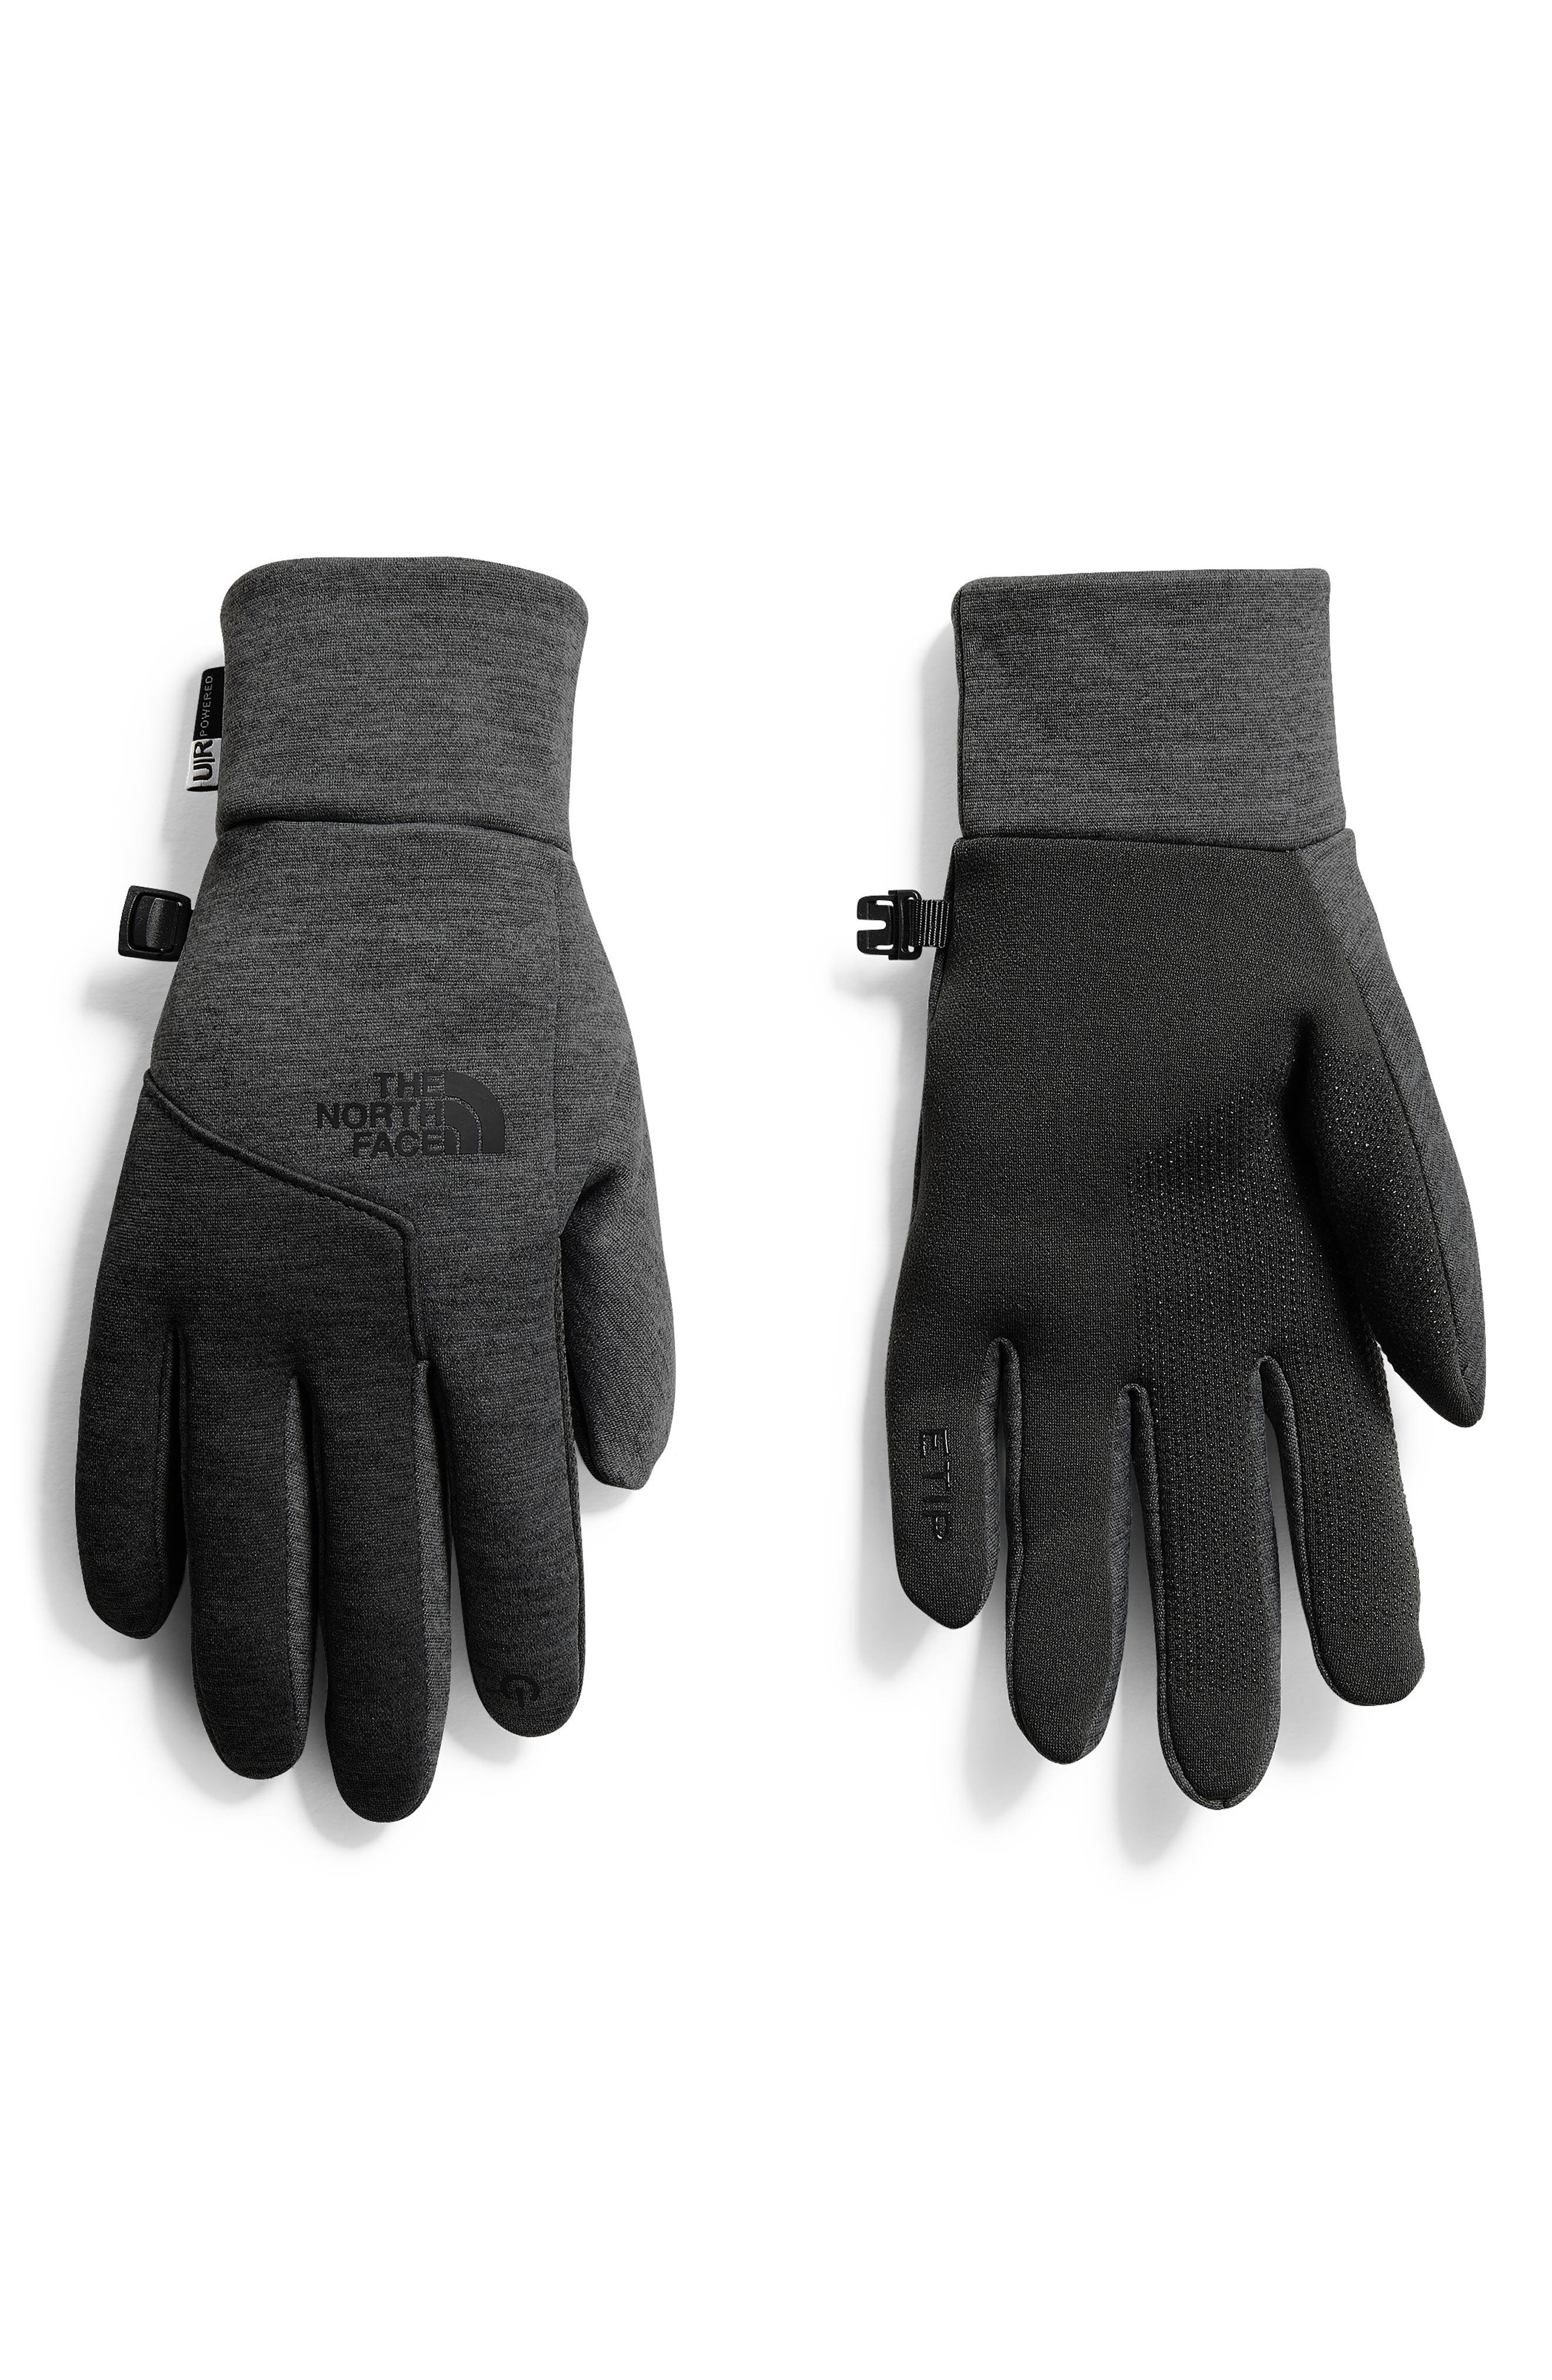 THE NORTH FACE Etip Gloves, Main, color, BLACK/ DARK GREY HEATHER